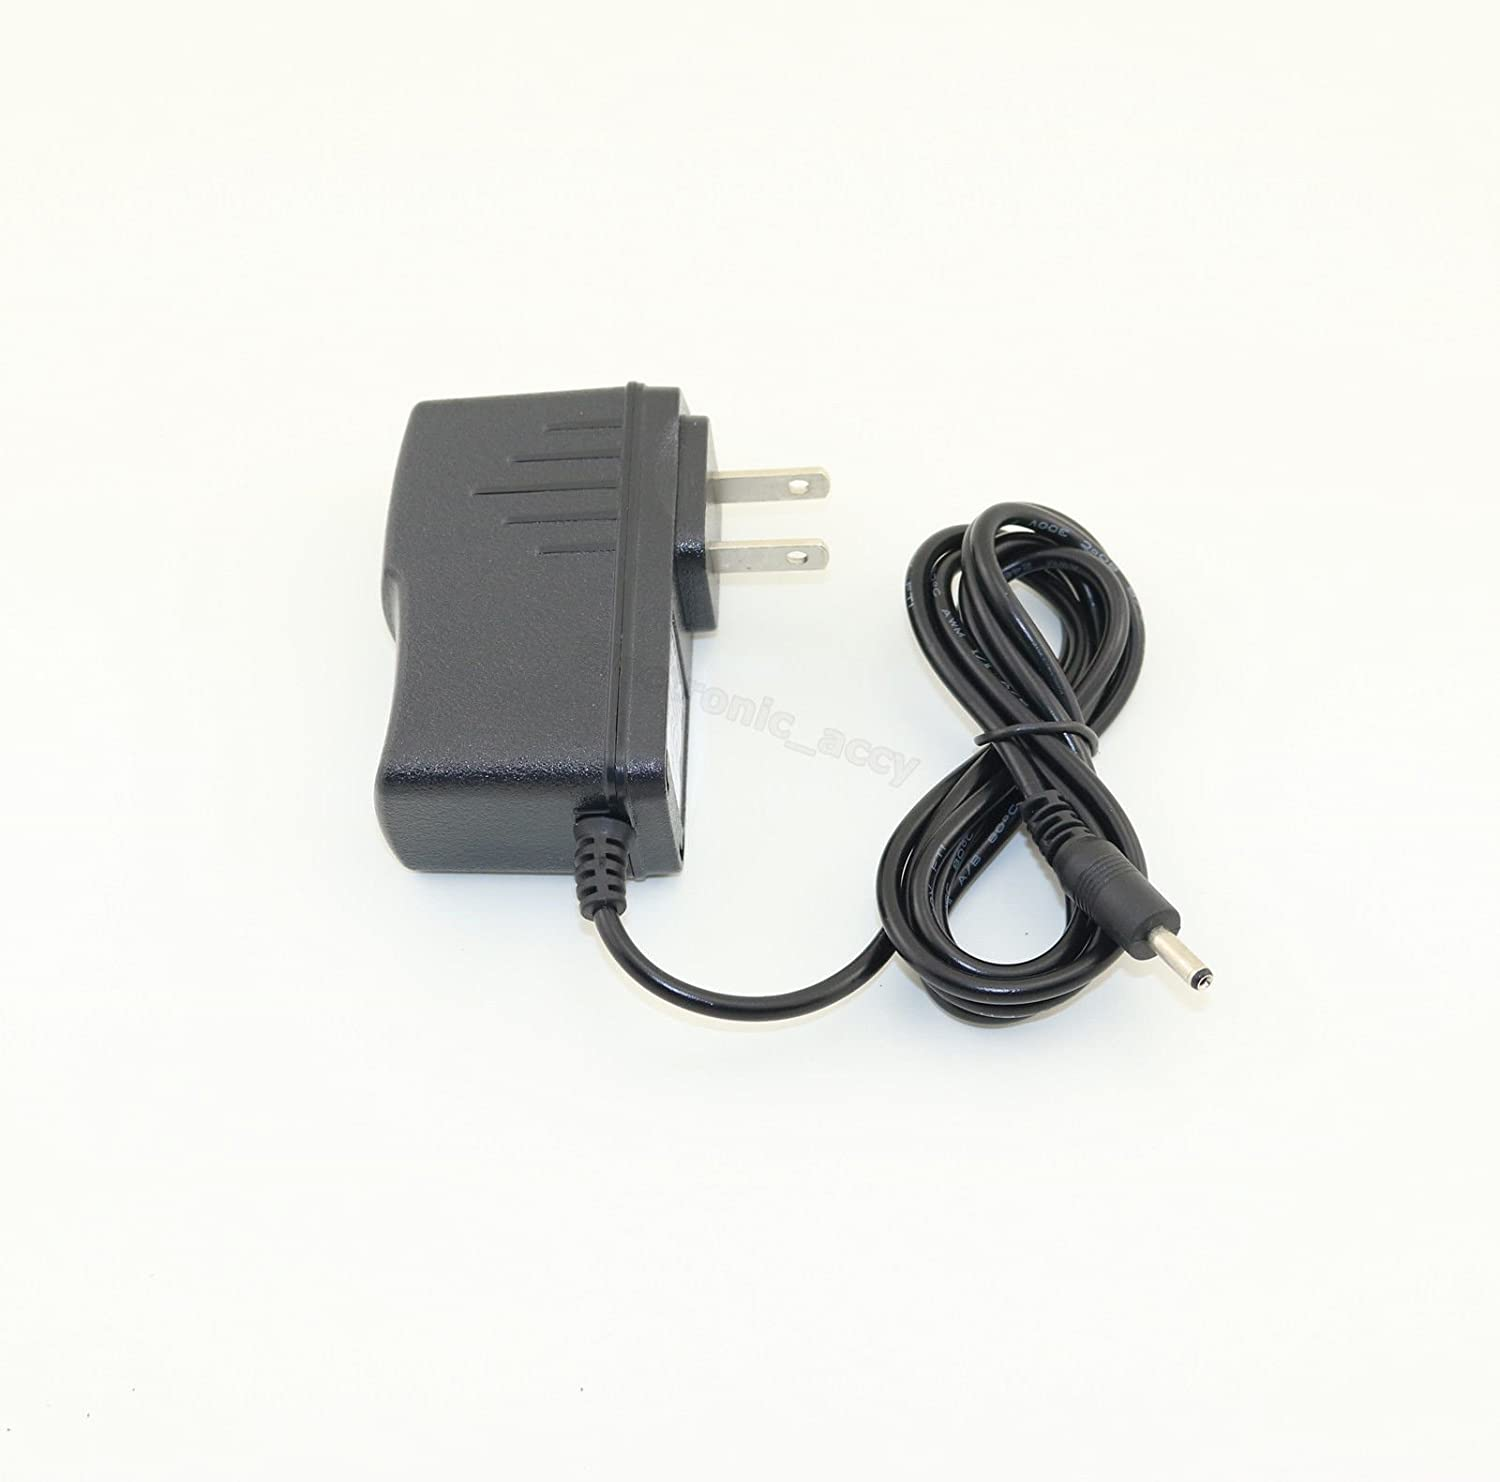 AC 100V-240V Converter Adapter DC 6V 1A 1000mA Power Supply US DC 3.5mm ×1.35mm